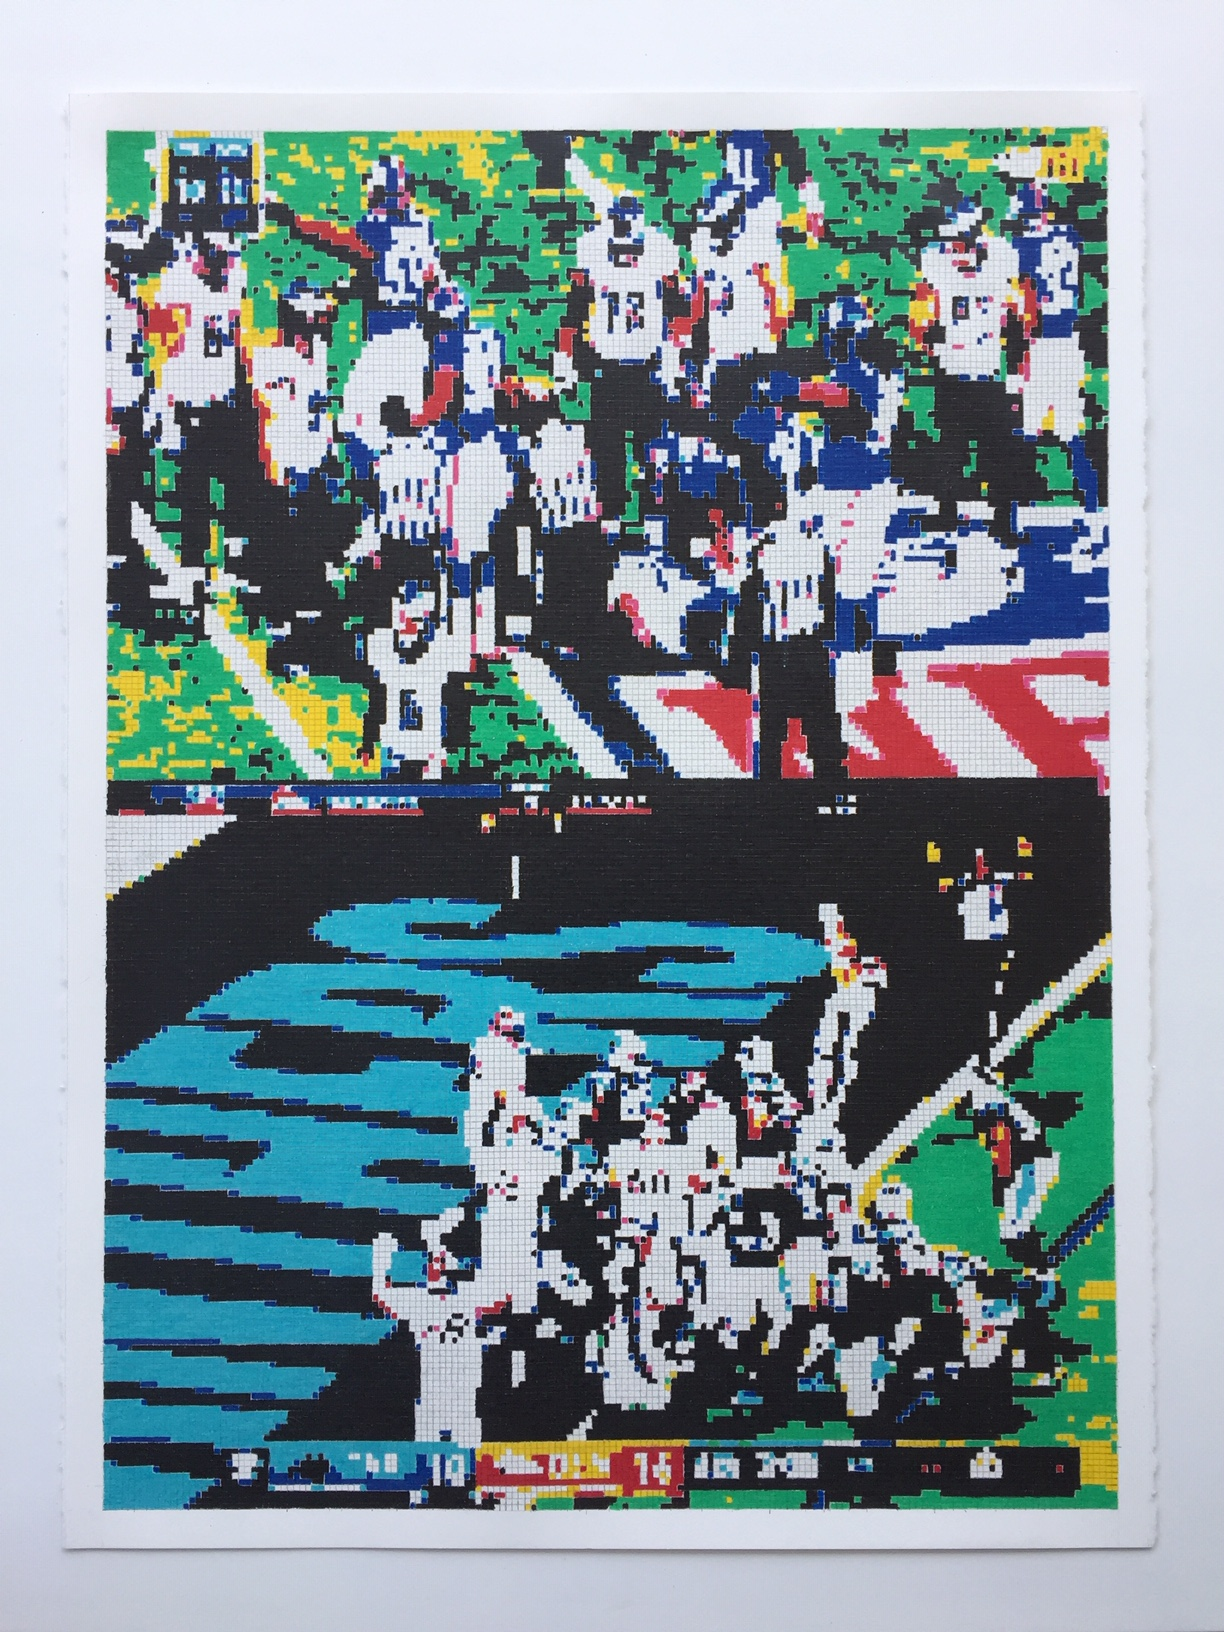 Ok I think I got it now so a touchdown is worth 7 points unless you choose to score a second touchdown instead of a field goal which makes it 8  , color pencil on paper, 2019